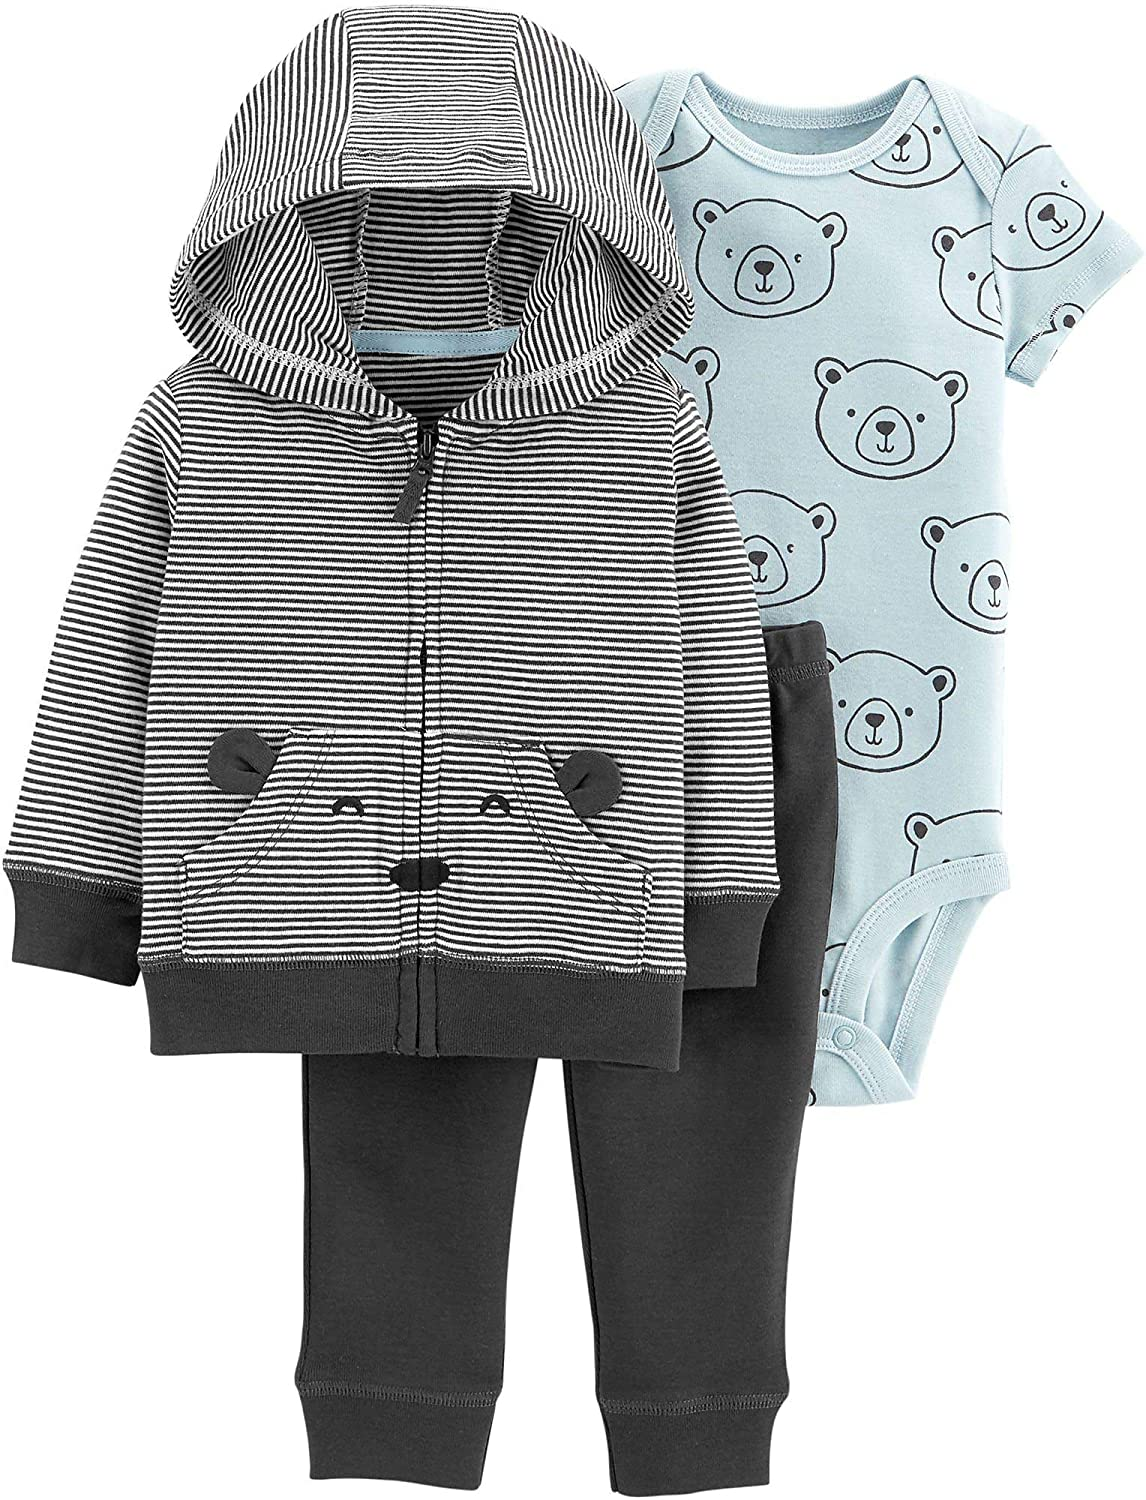 Carters Baby Boys 3-pc. Bear Jacket Clothing Set 3 Month Grey/Blue